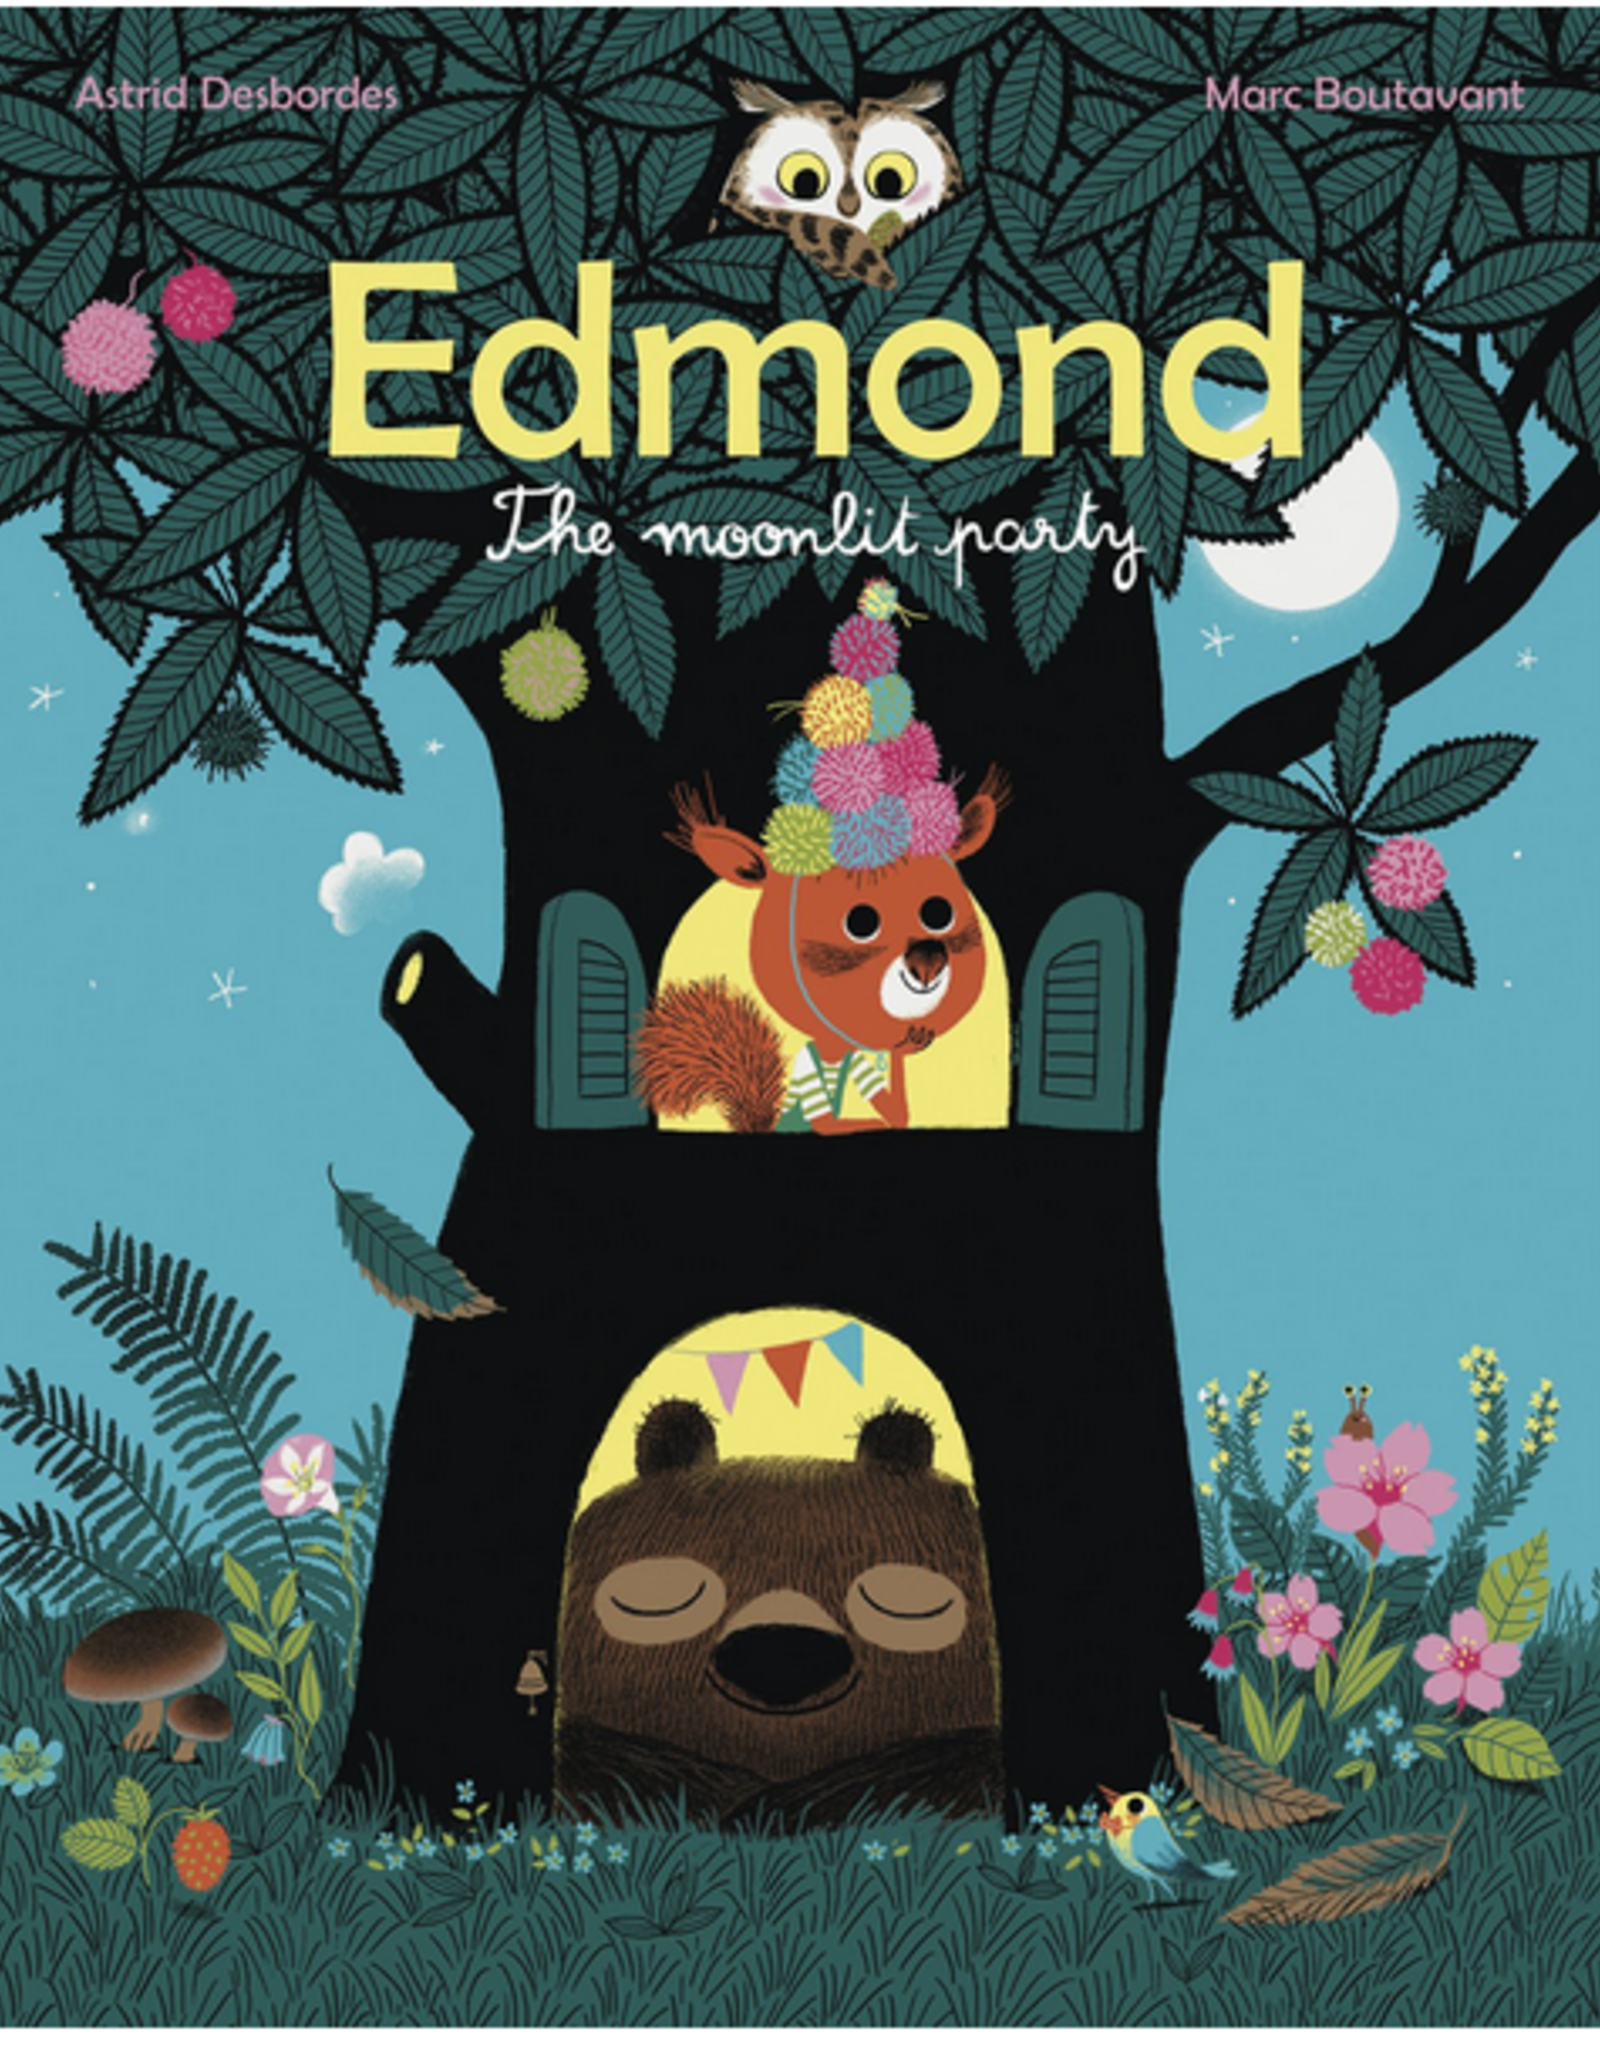 Edmond the Moonlit Party